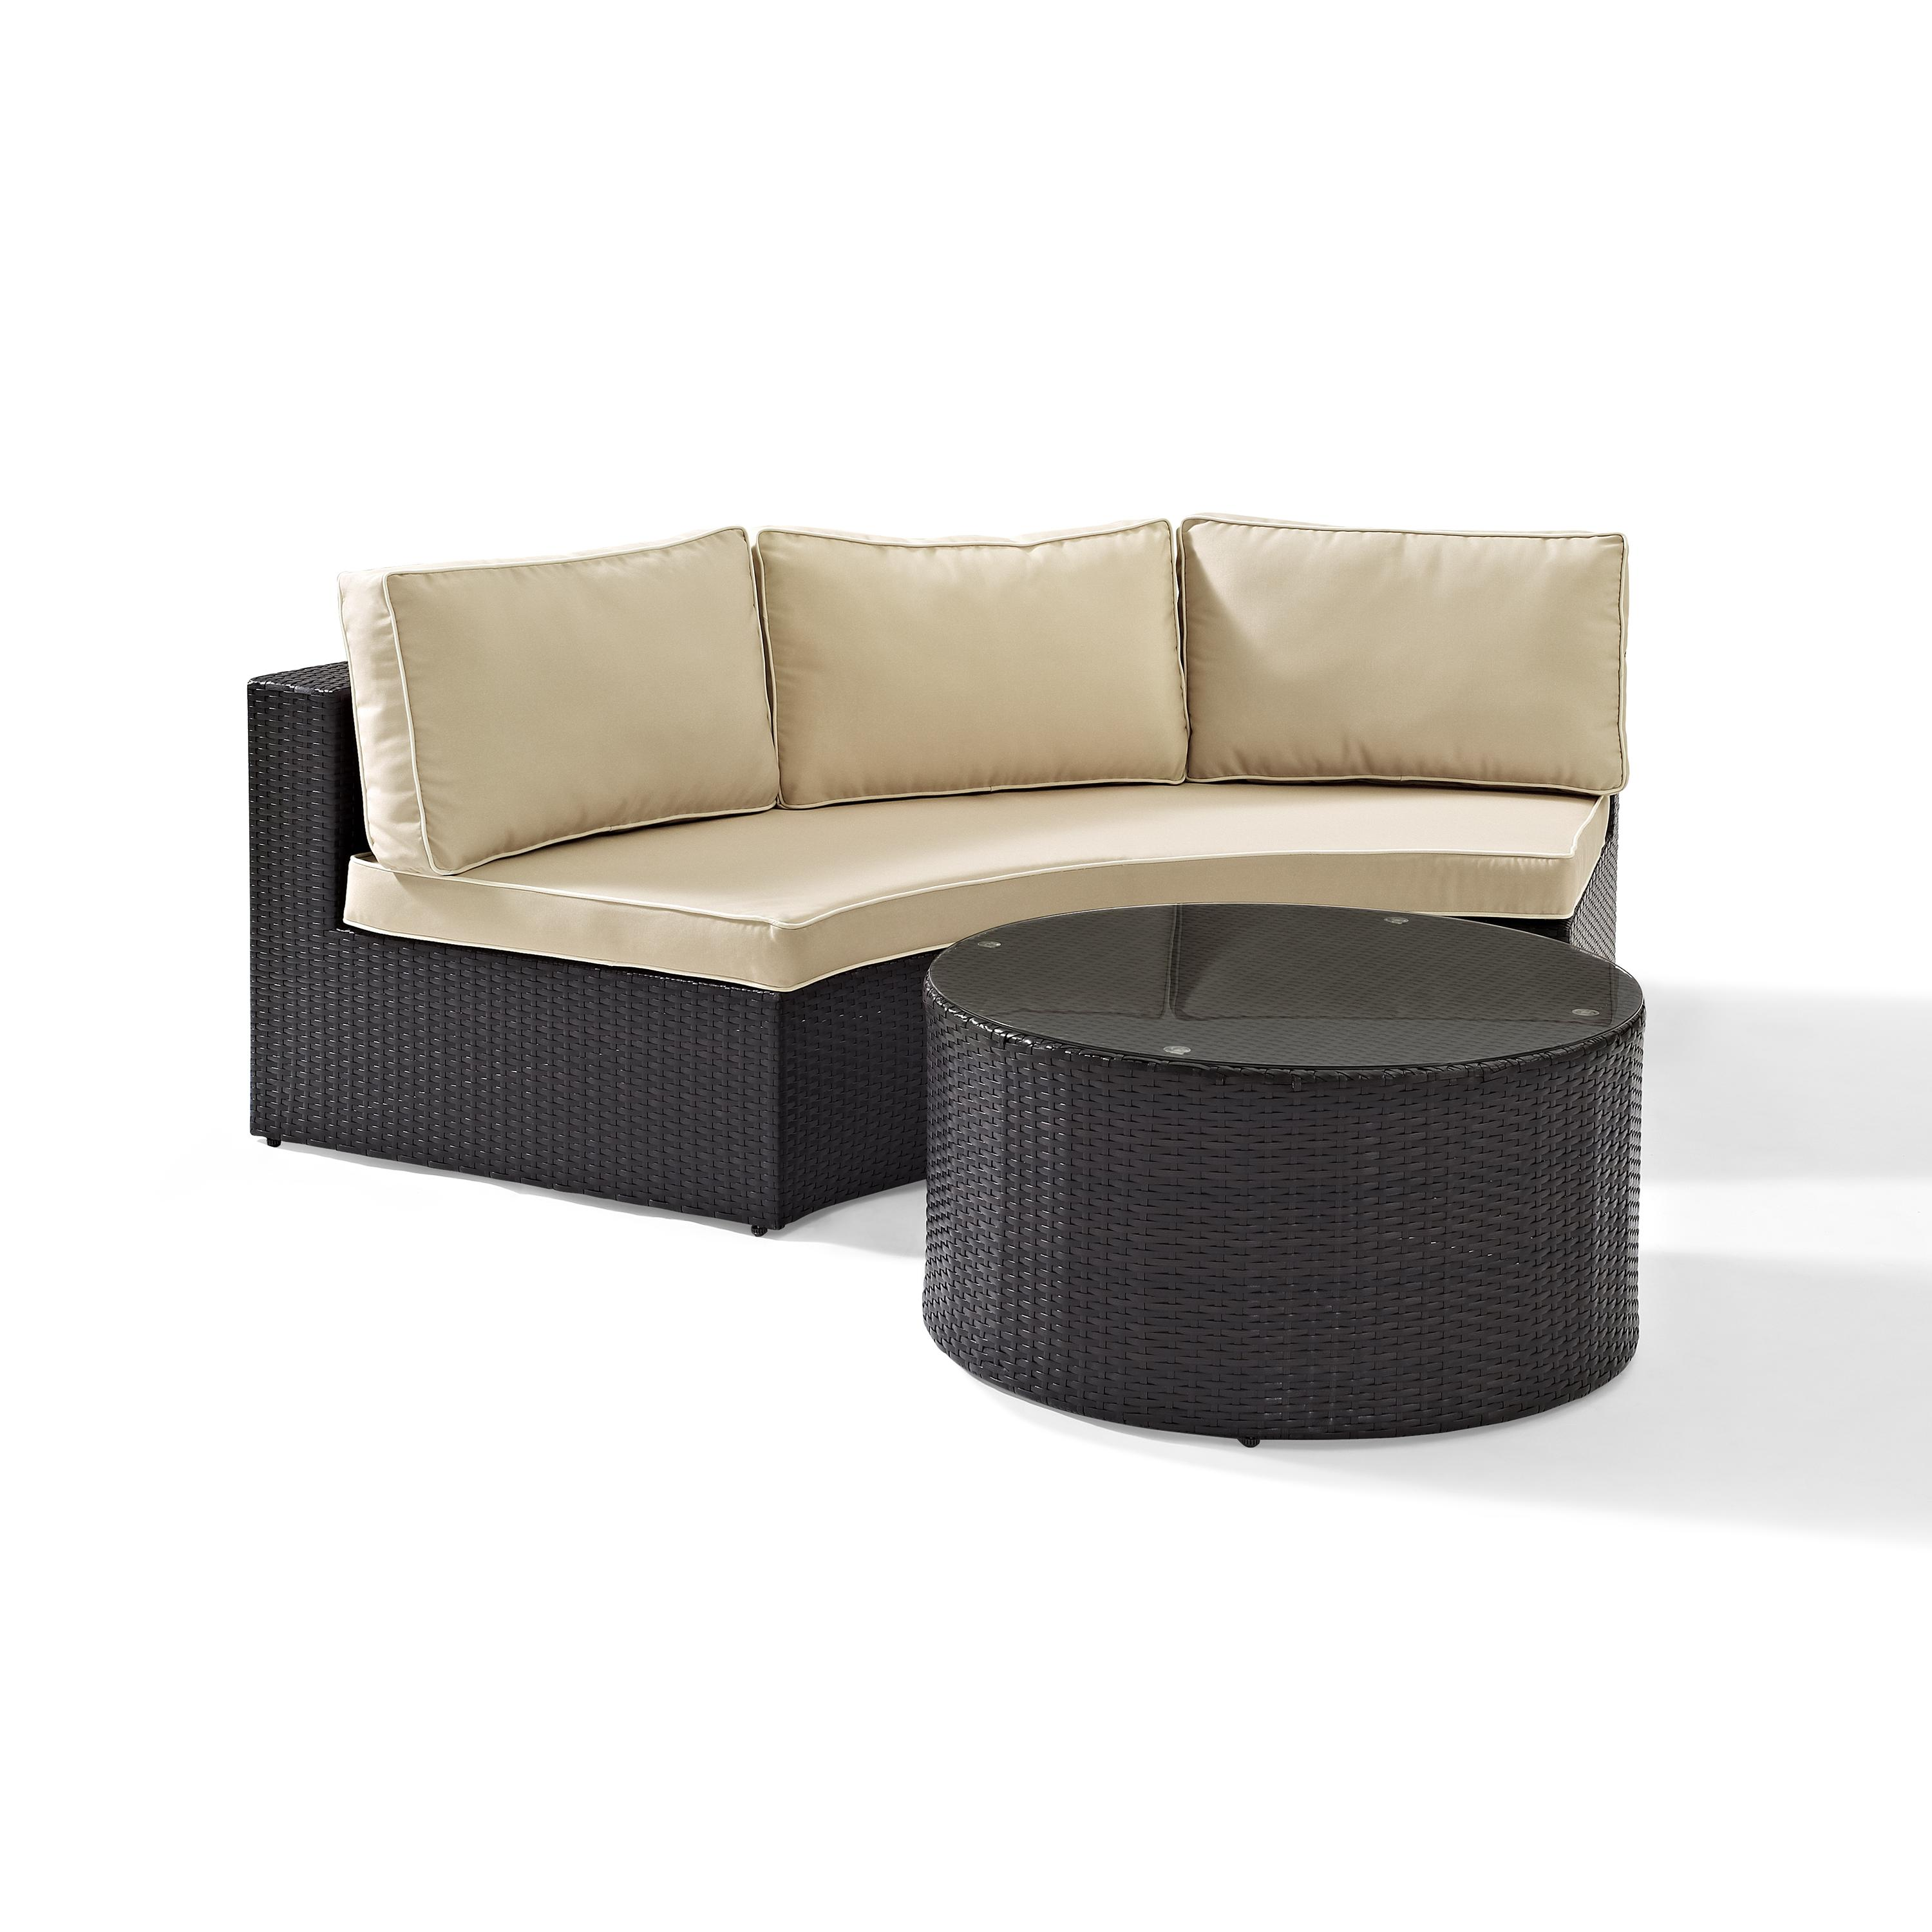 Catalina 2 Piece Outdoor Wicker Seating Set With Sand